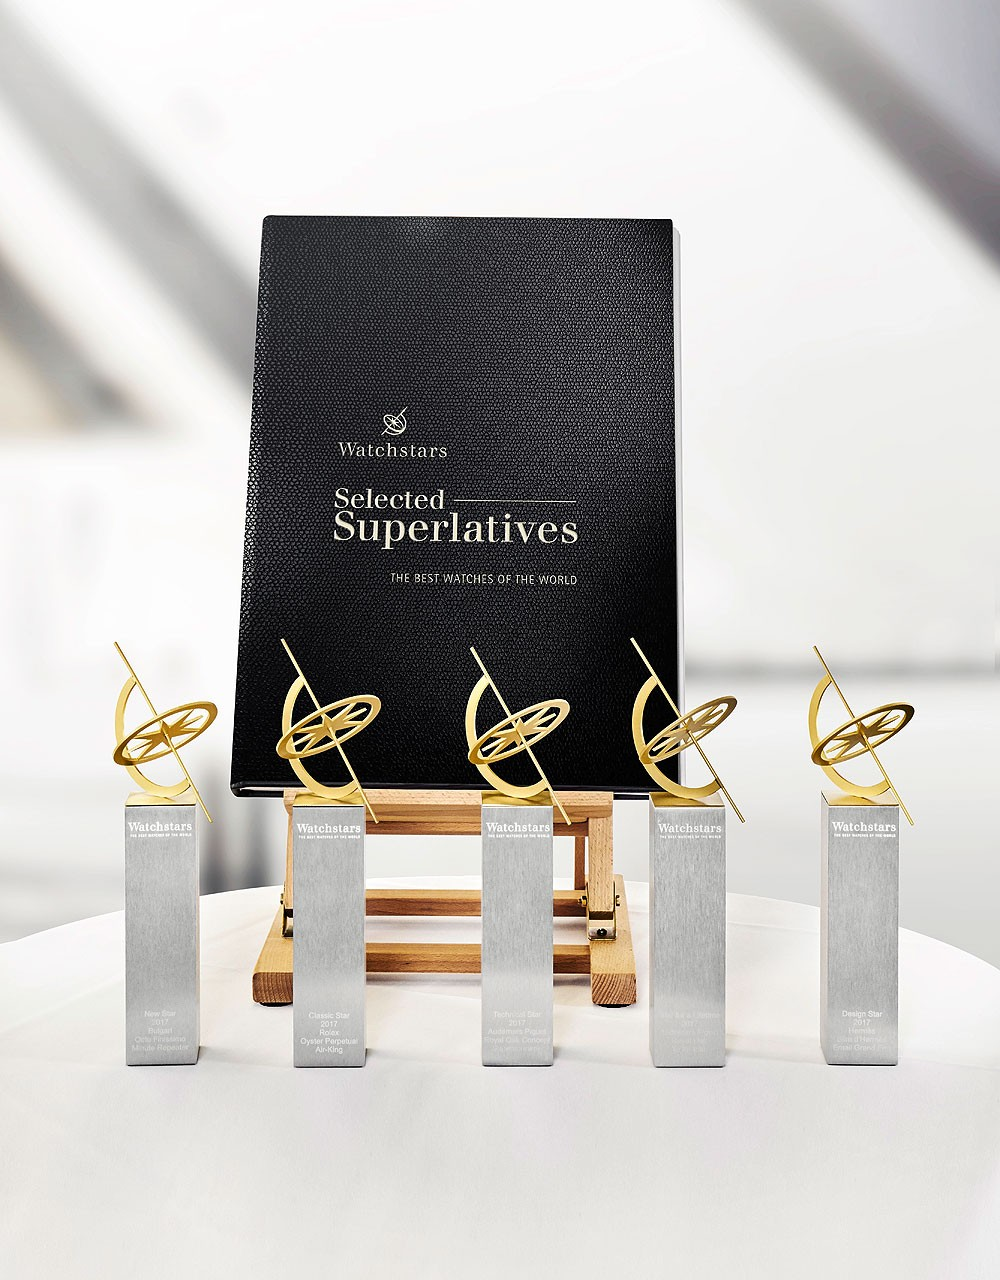 Selected Superlatives: The New Watchstars Book, Available Now for Pre-Order